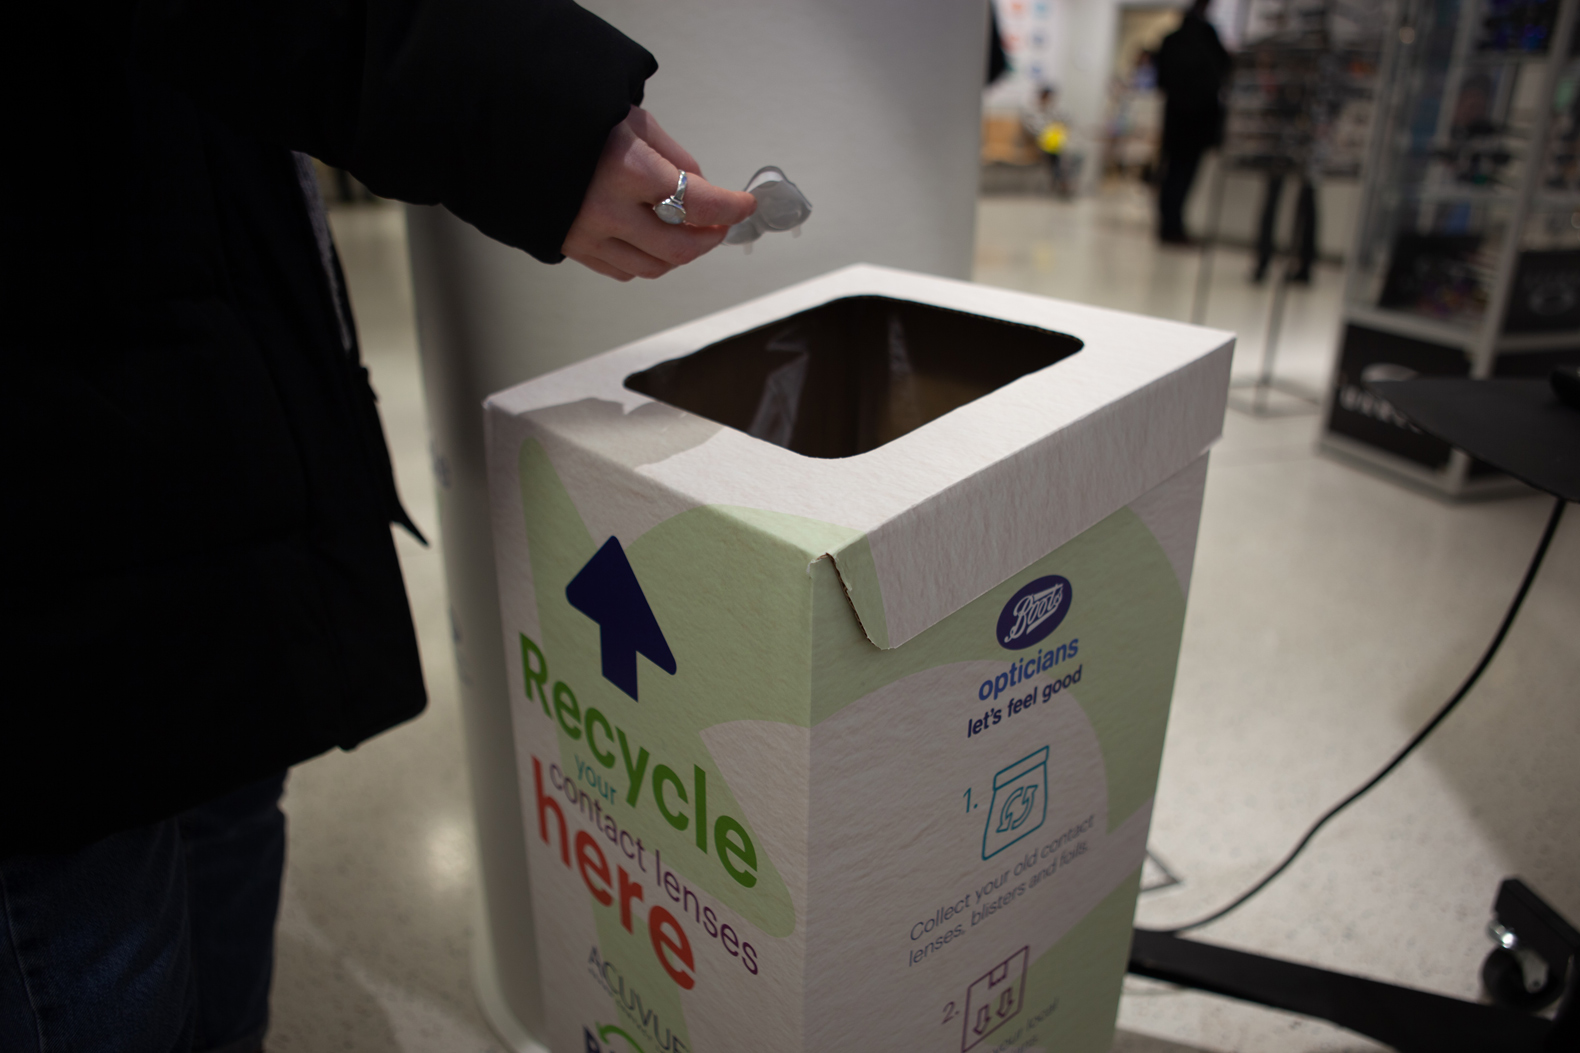 Johnson & Johnson offers Acuvue contact recycling program